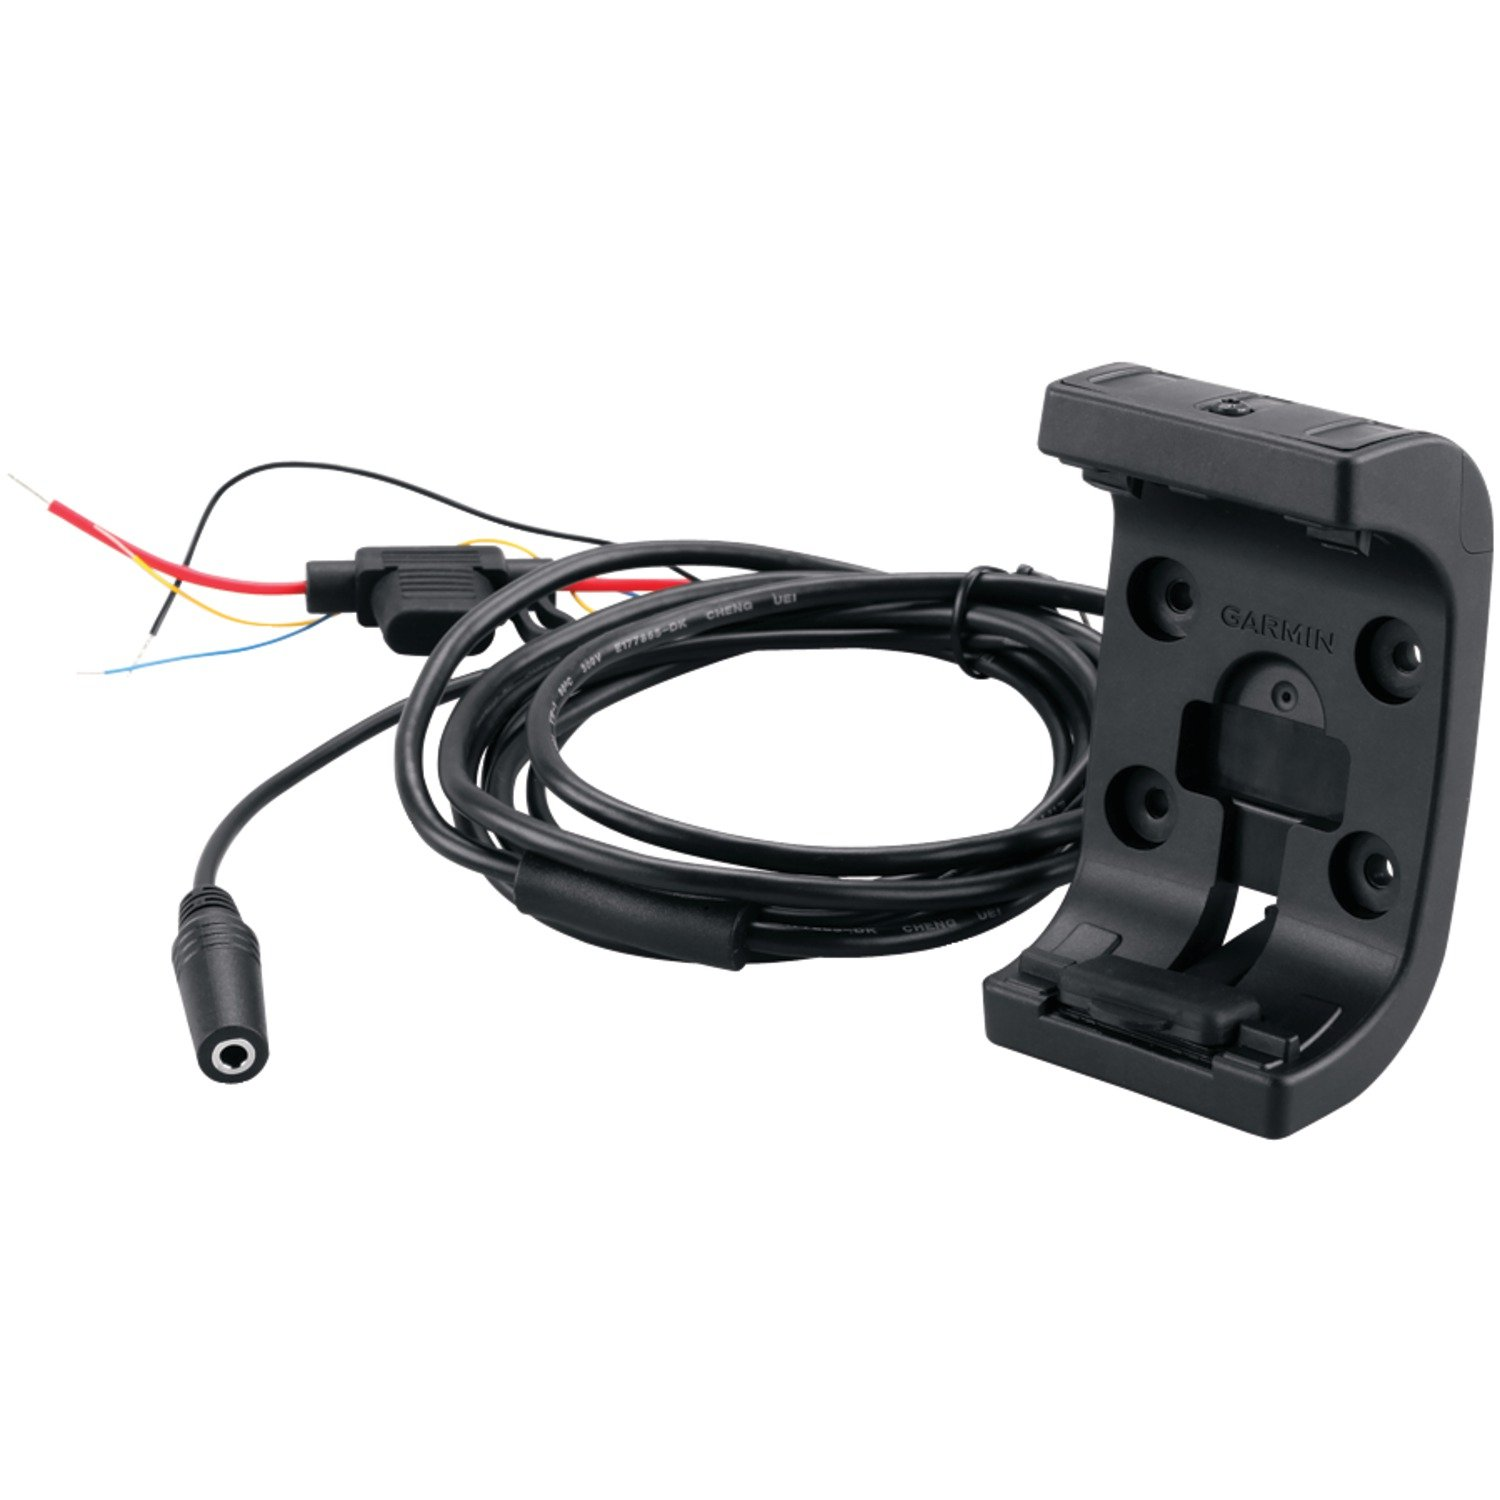 Amps Rugged Mount with aud.-power Garmin 010-11654-01